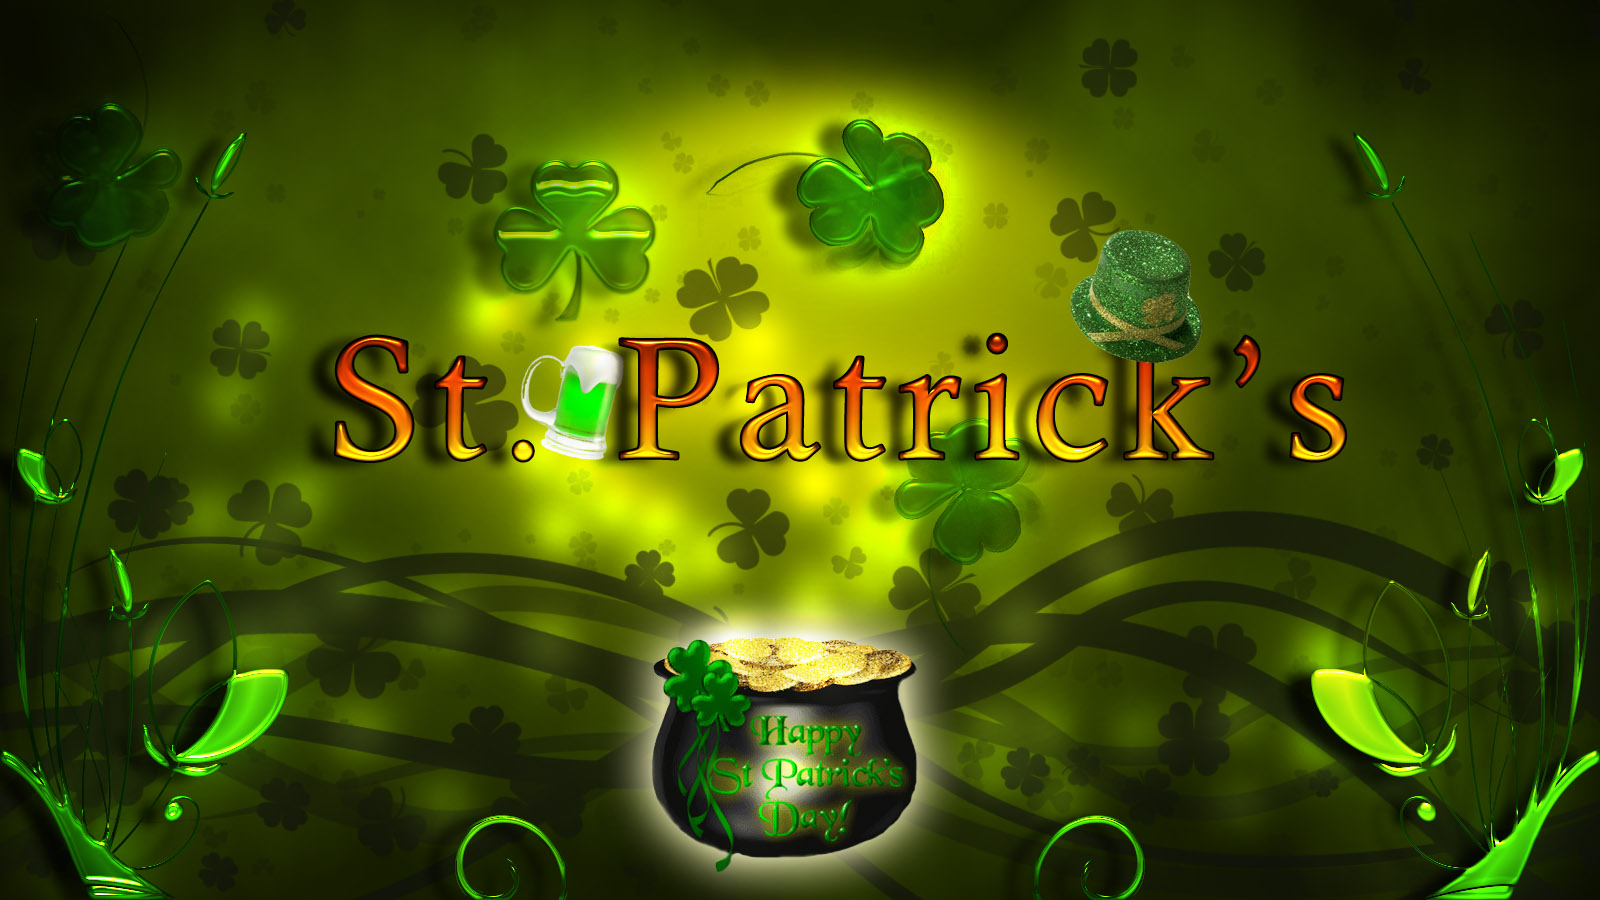 St Patricks Day wallpaper   ForWallpapercom 1600x900